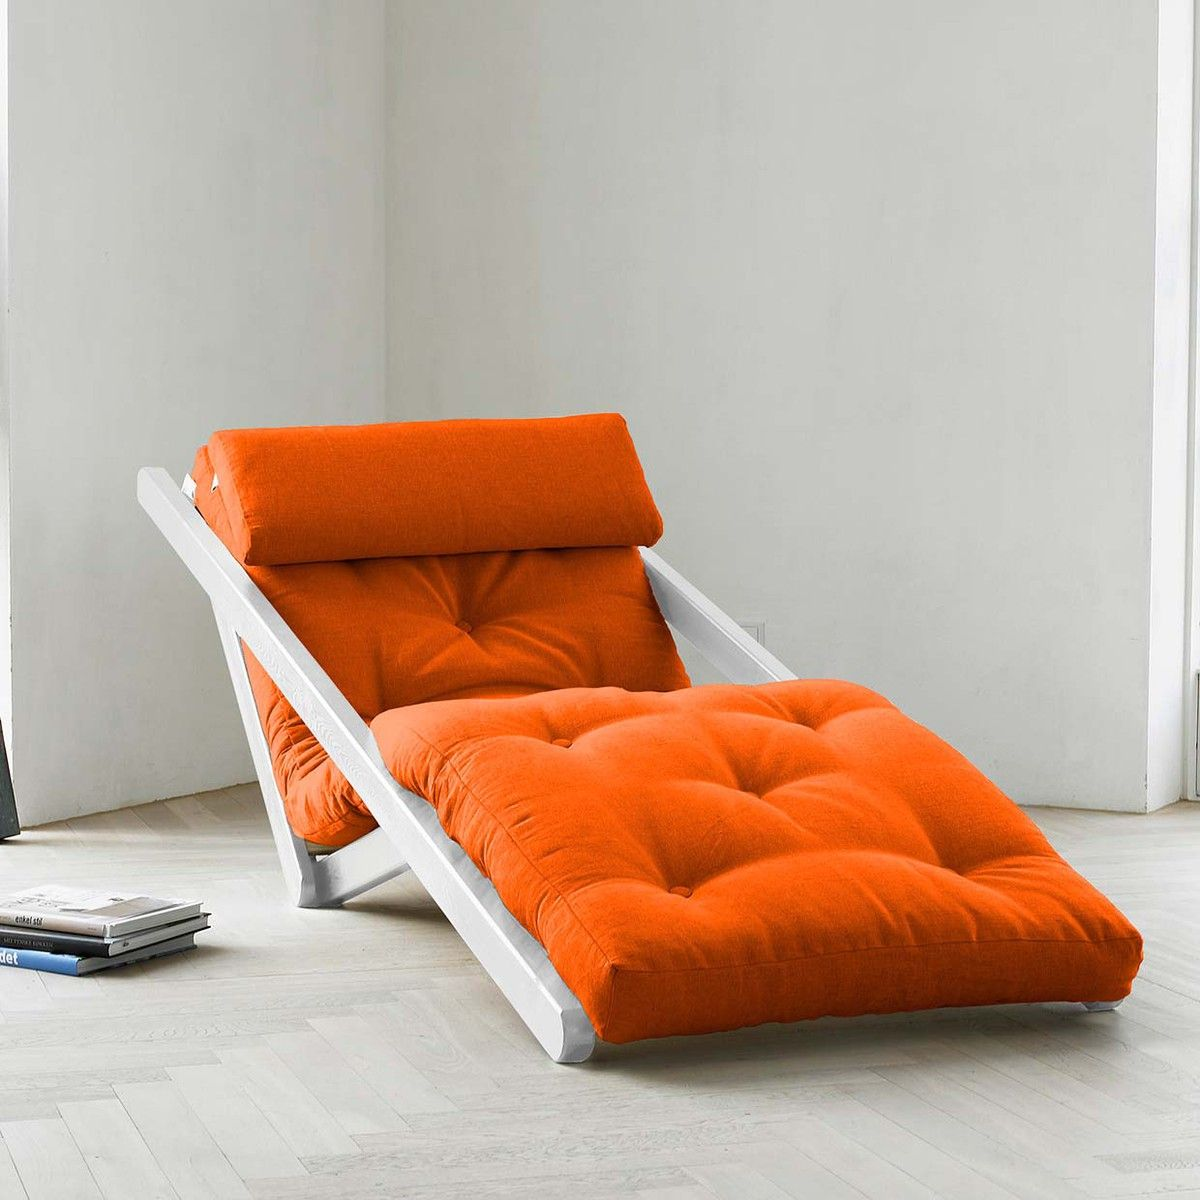 New Futons For The College Dorm Small Out House Or Children S Guests Fab Com Figo Orange White